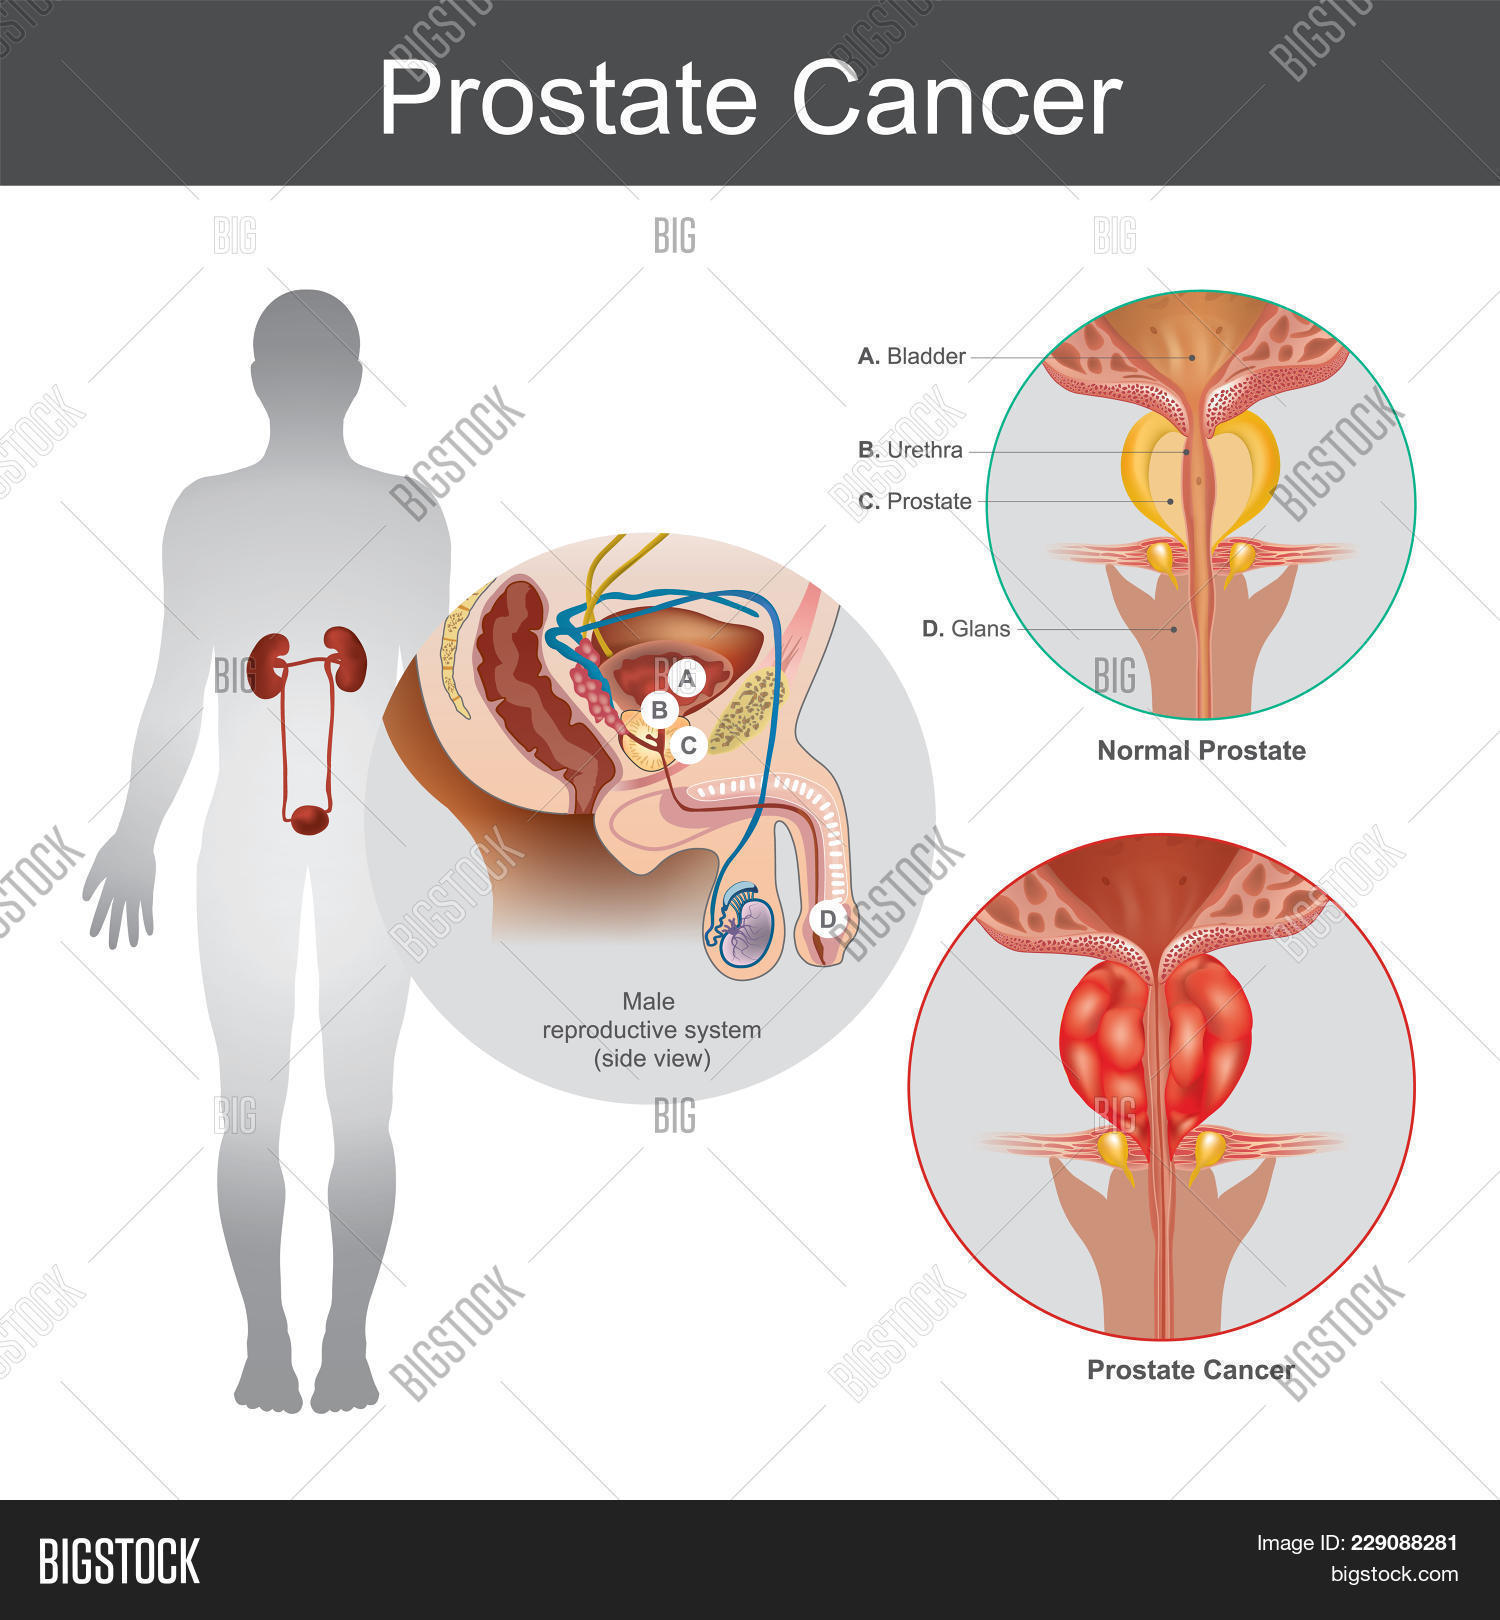 hight resolution of the prostate cancer is the most common cancer among men not skin cancer the prostate